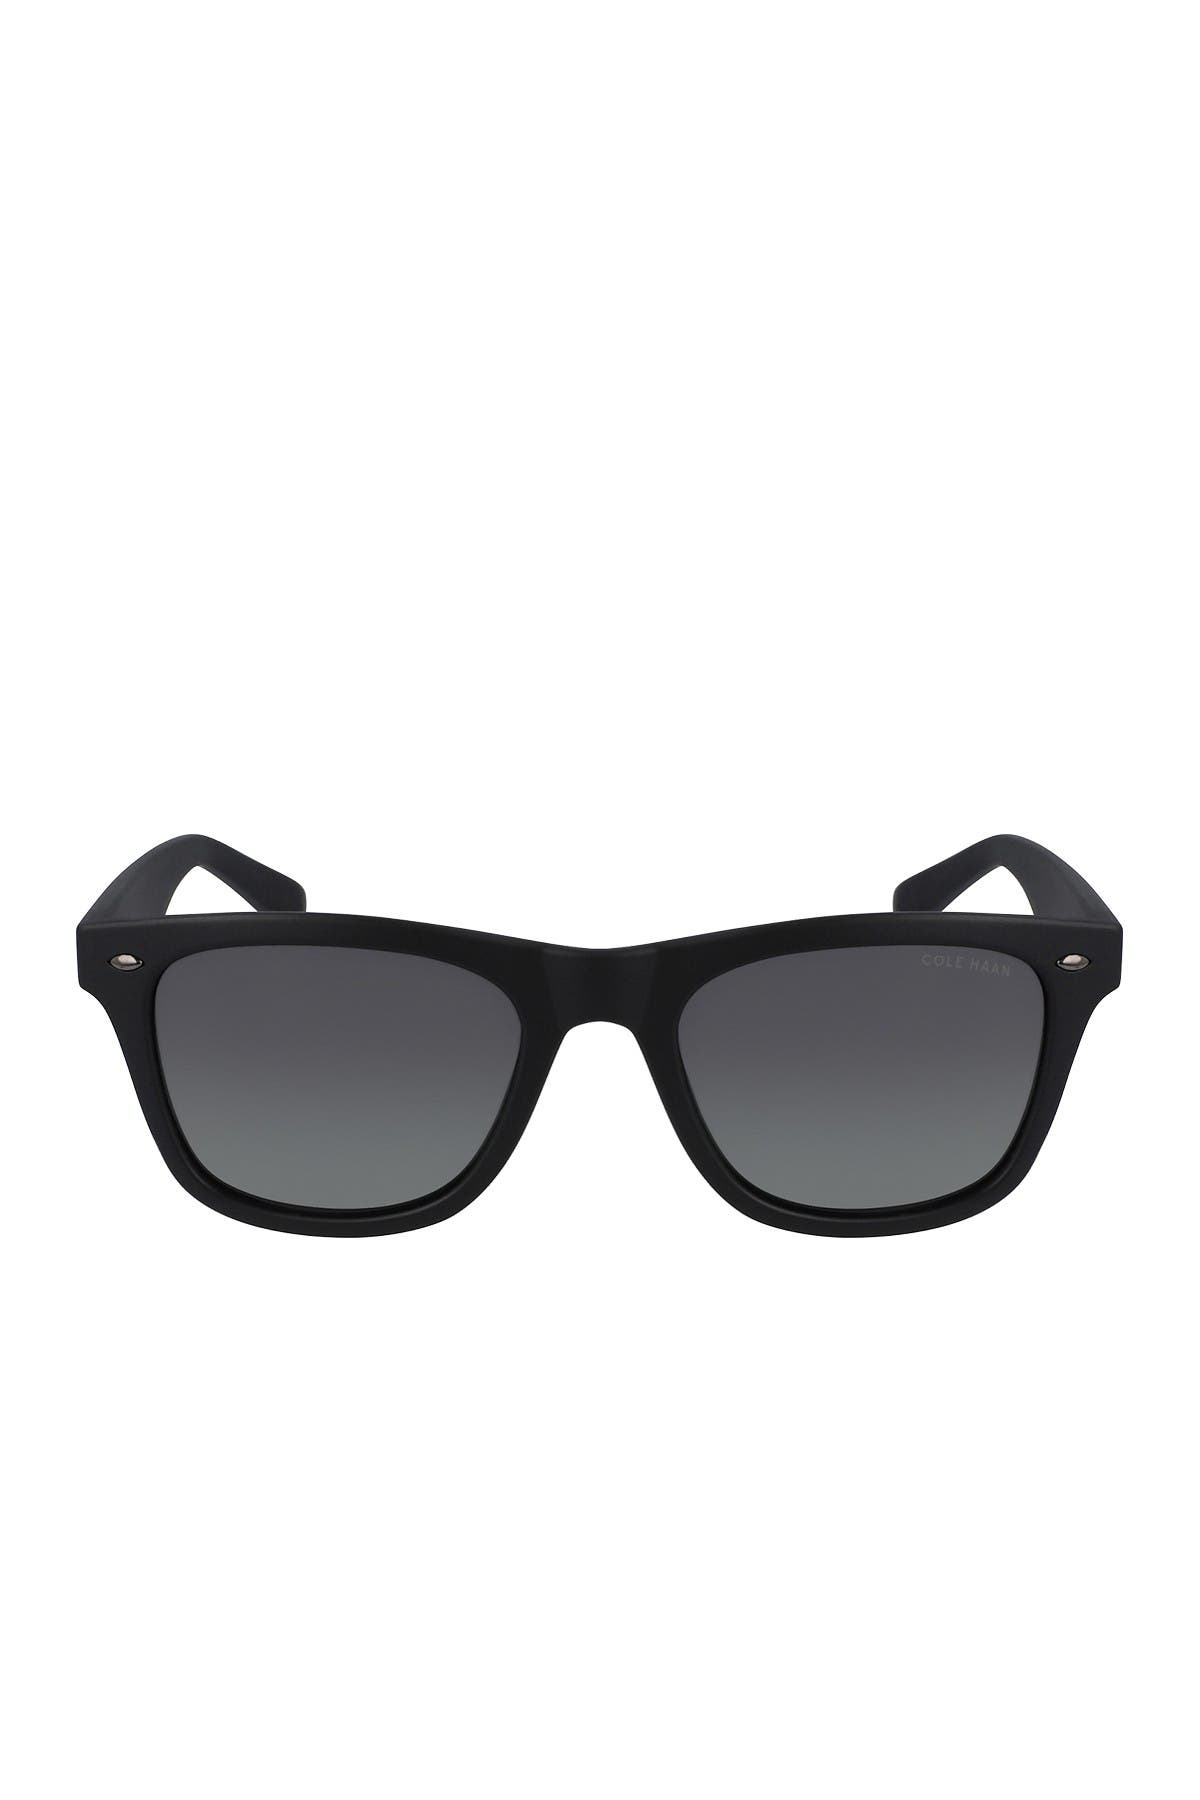 Image of Cole Haan 51mm Polarized Retro Sunglasses